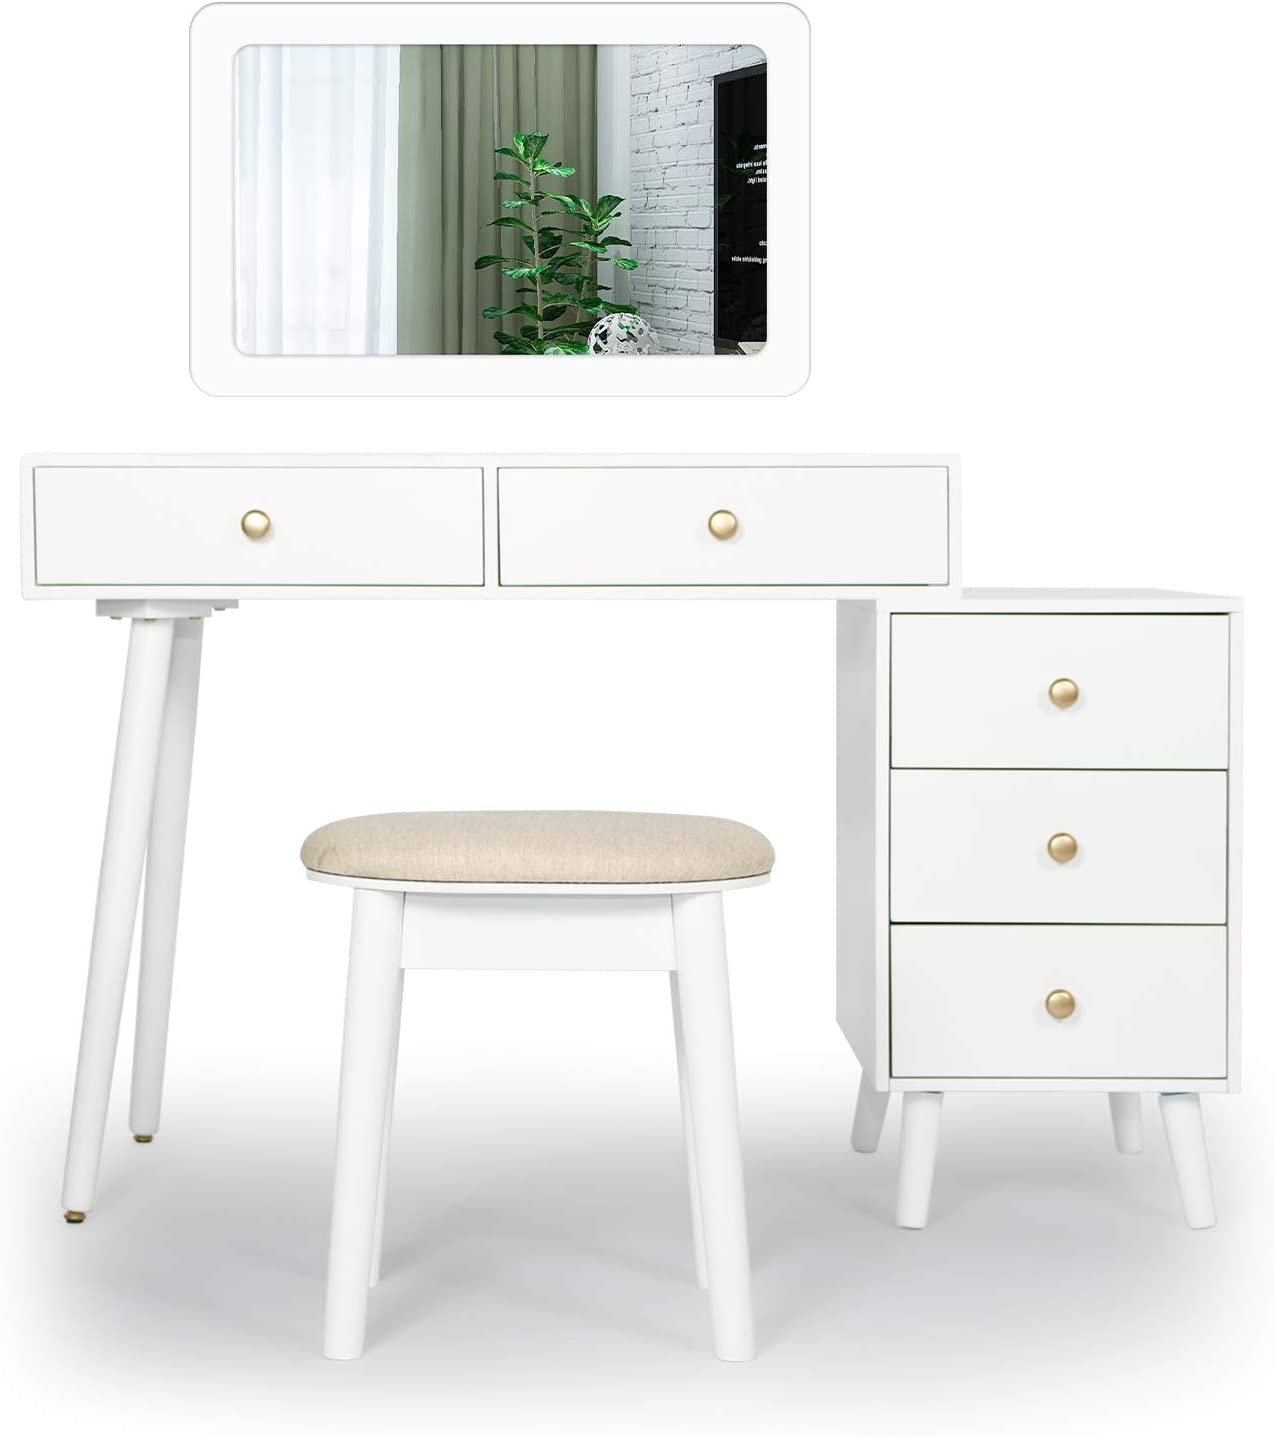 Amazon Com Makeup Vanity Set With Mirror And Drawers Chest Vanity Table For Women Girls Bedroom Makeup Dressing Table With Cushioned Stool White Kitchen Dining